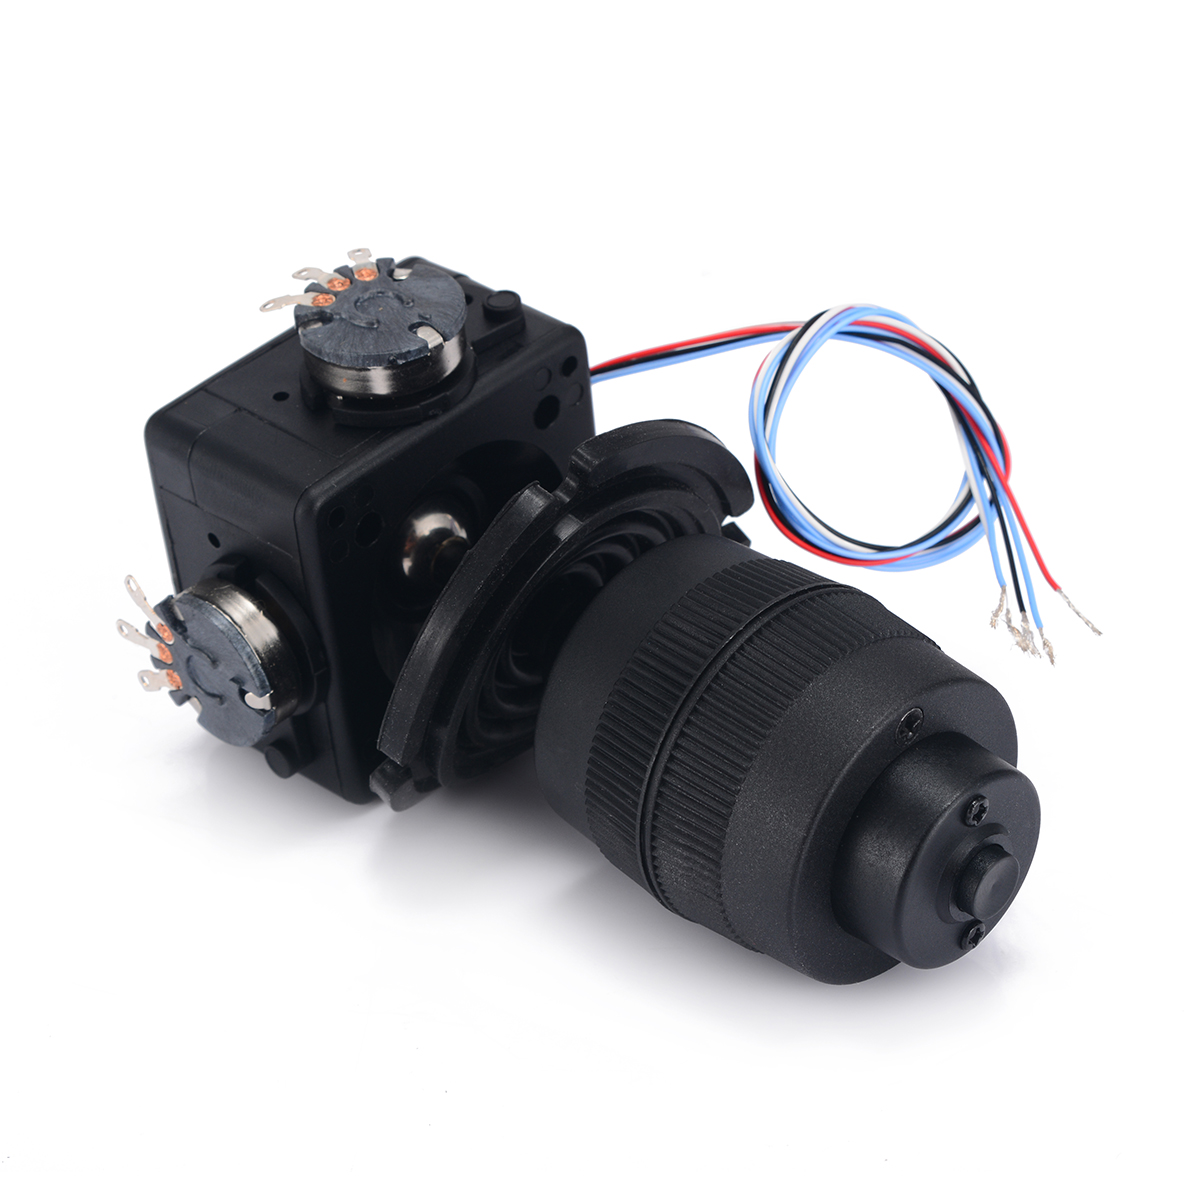 Durable Plastic 4-Axis Joystick Potentiometer Button For JH-D400X-R4 10K 4D Black with Wire Automatization Machine Control 1pcs creative cute mermaid pencil sharpener kids school toy stationery princess doll style manual pencil sharpener